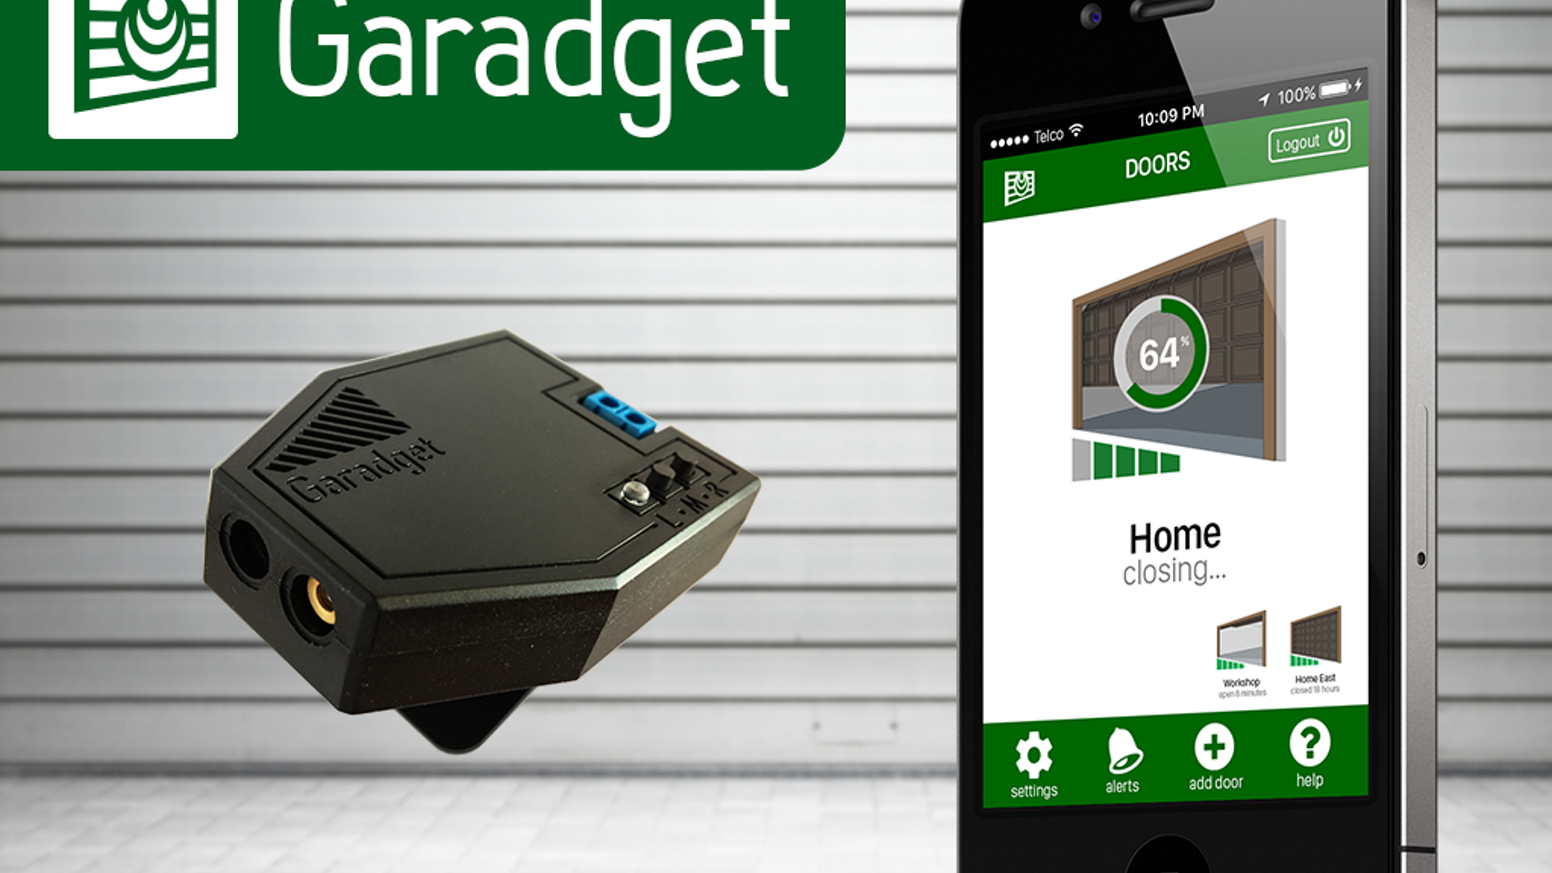 Garadget garage door futurizer by softcomplex kickstarter cloud enabled controller for existing garage doors monitor and operate your garage doors from rubansaba